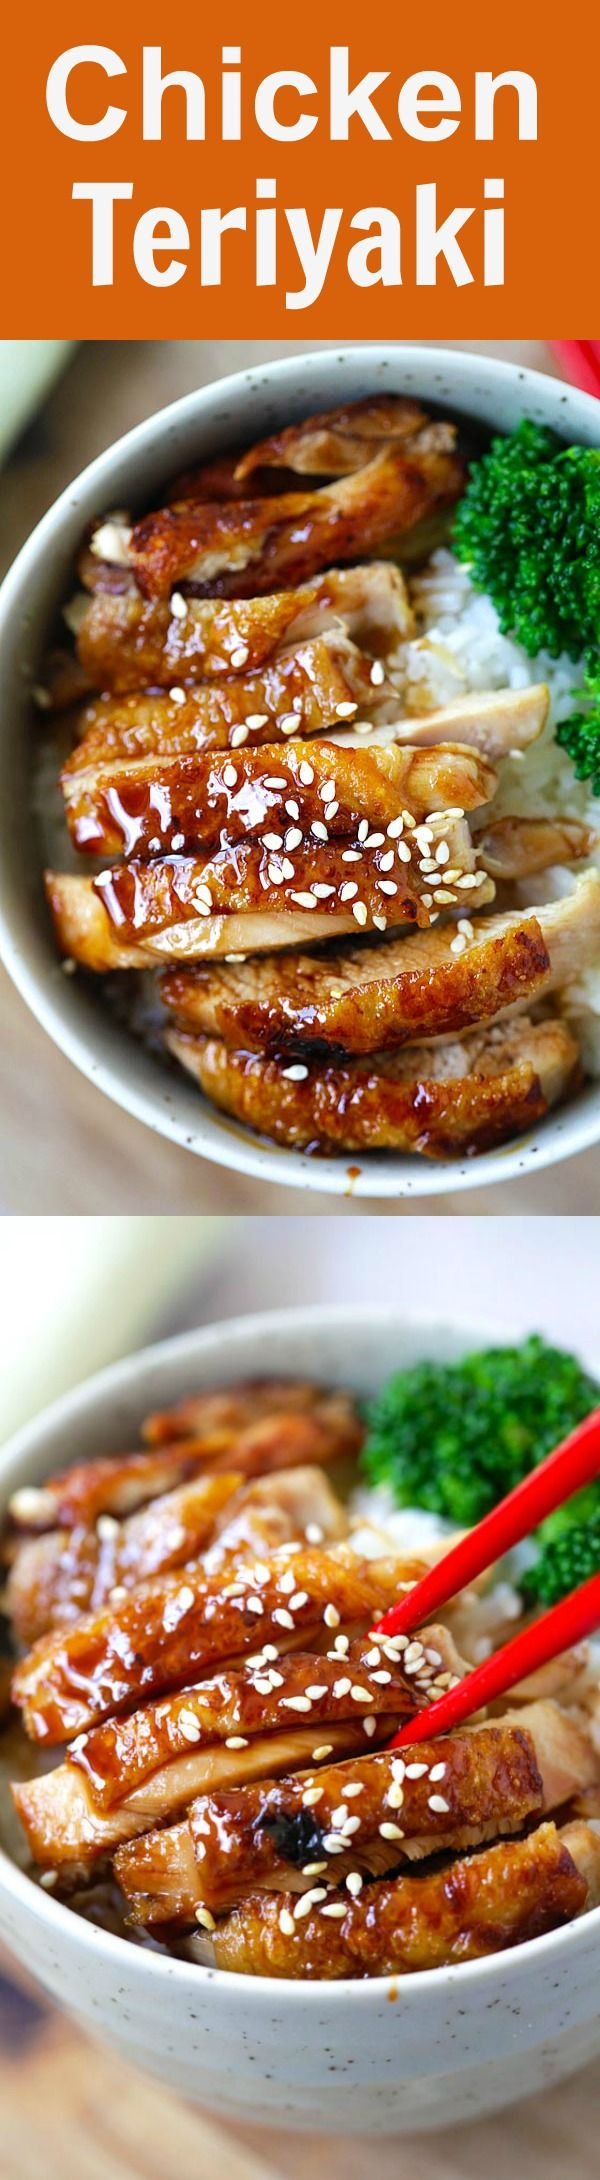 Chicken Teriyaki – learn how to make teriyaki sauce and chicken teriyaki that taste like the best Japanese restaurants. So easy and so good | rasamalaysia.com